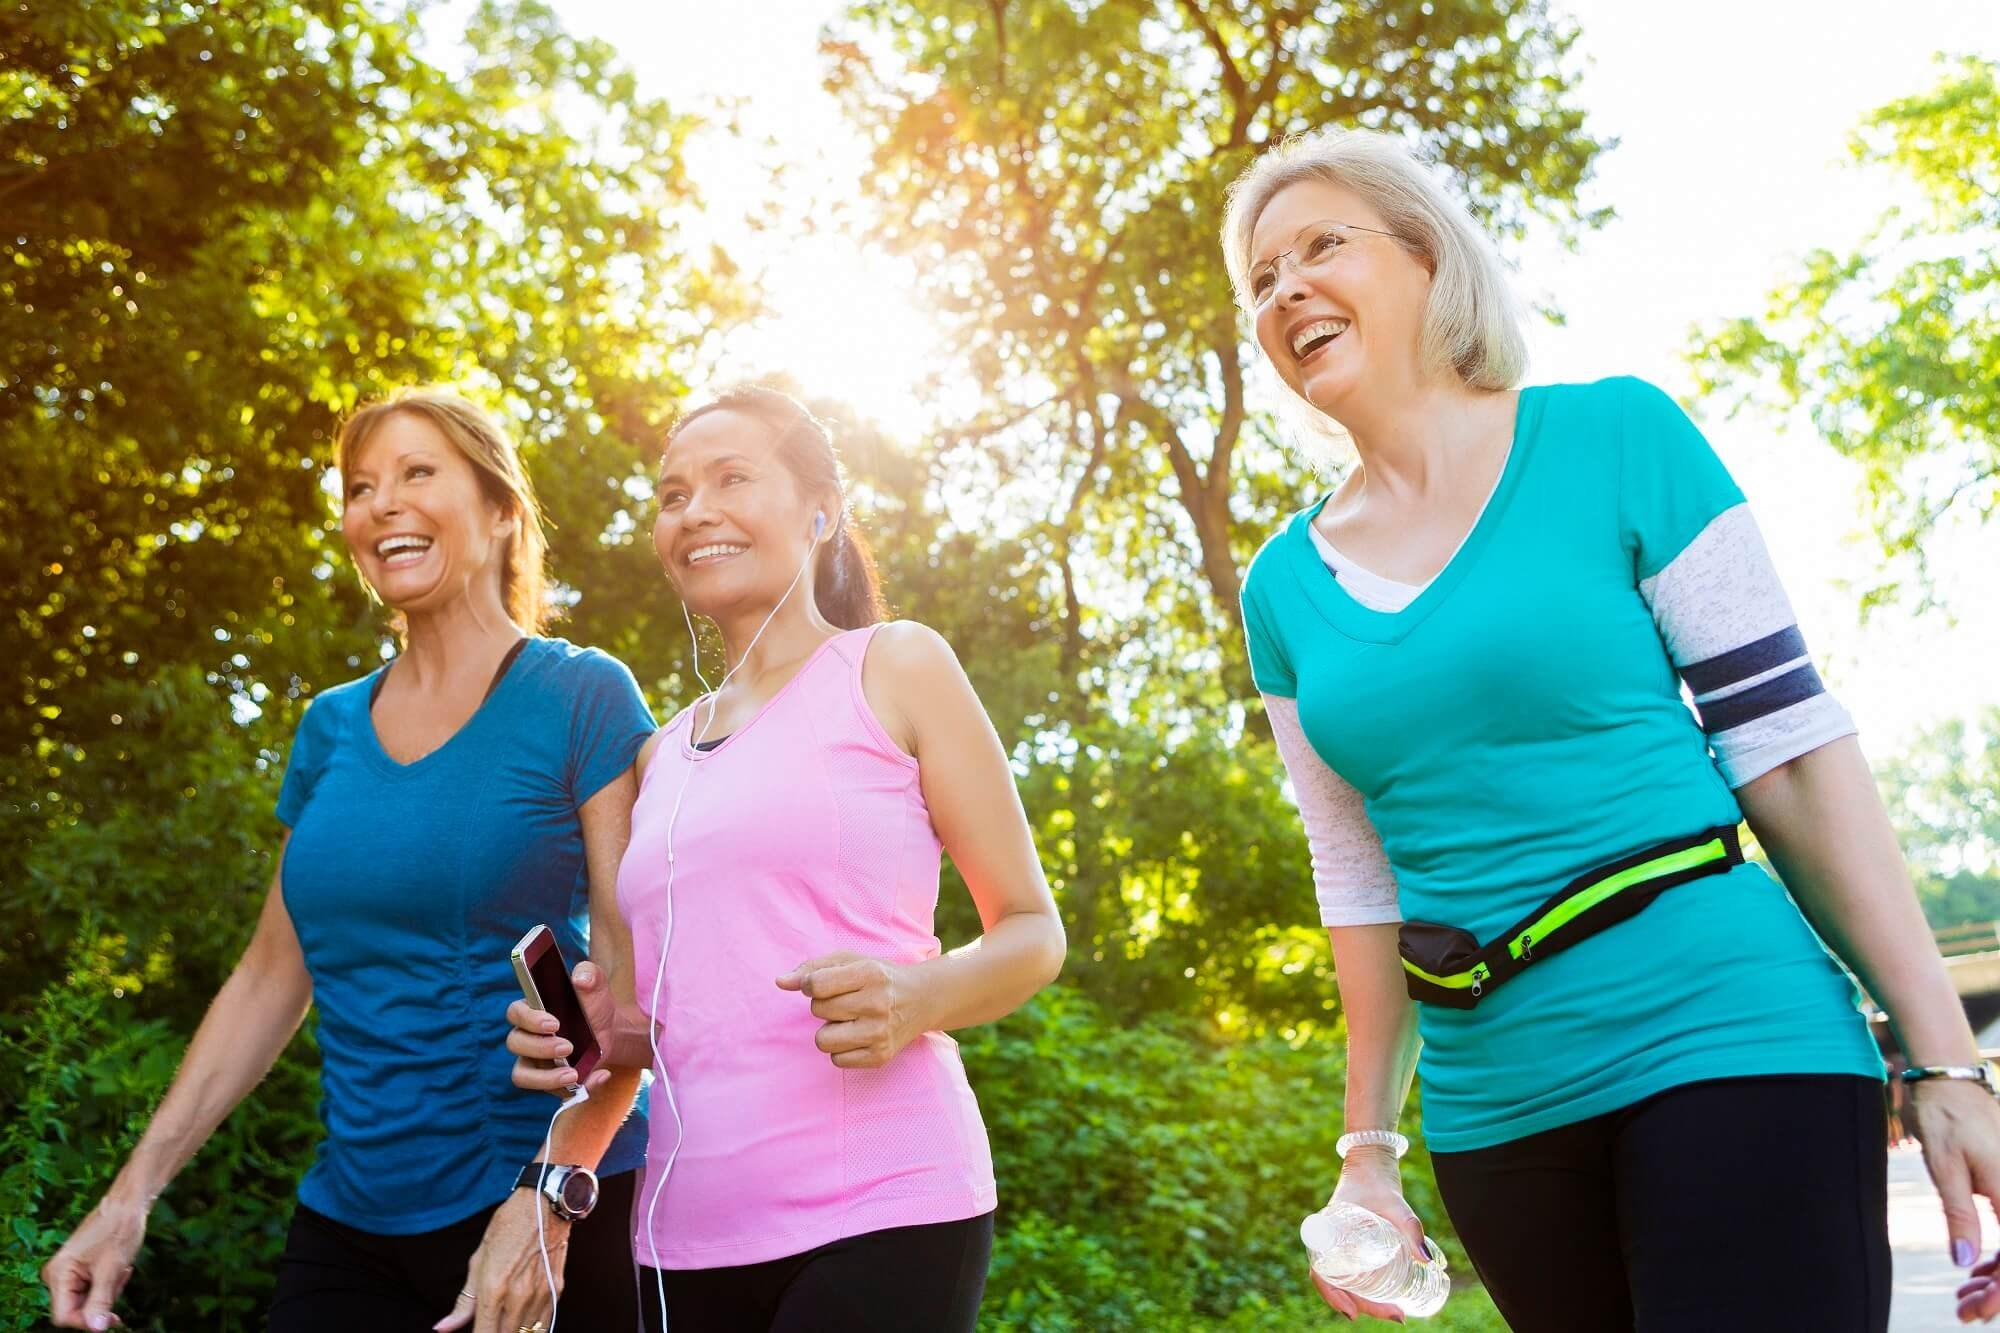 Exercise Linked to Reduced Mortality in Patients With Cancer